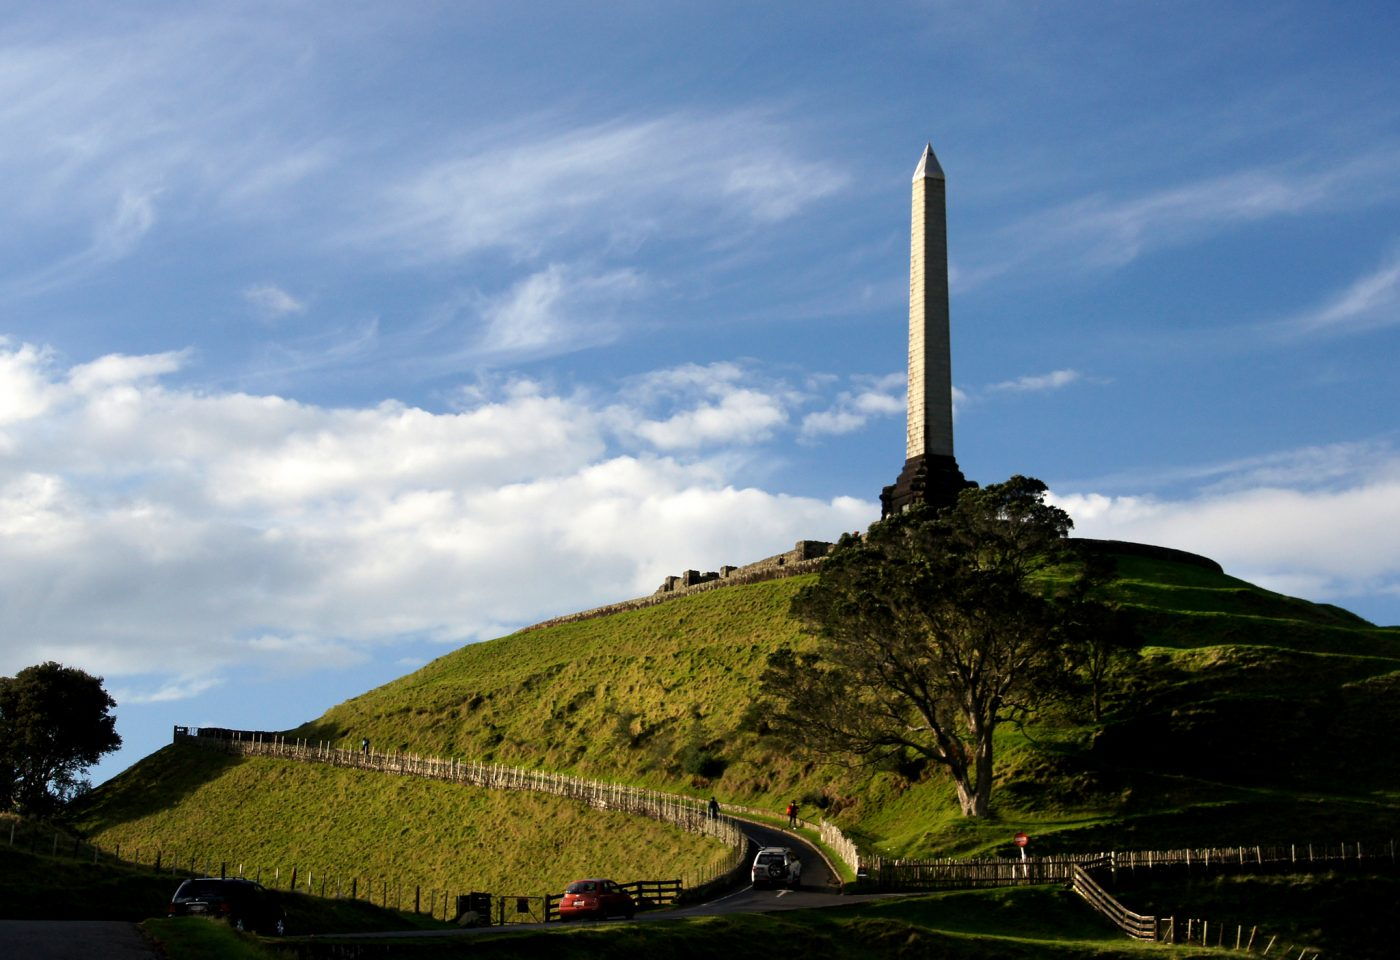 Things to see in New Zealand: One Tree Hill in Auckland